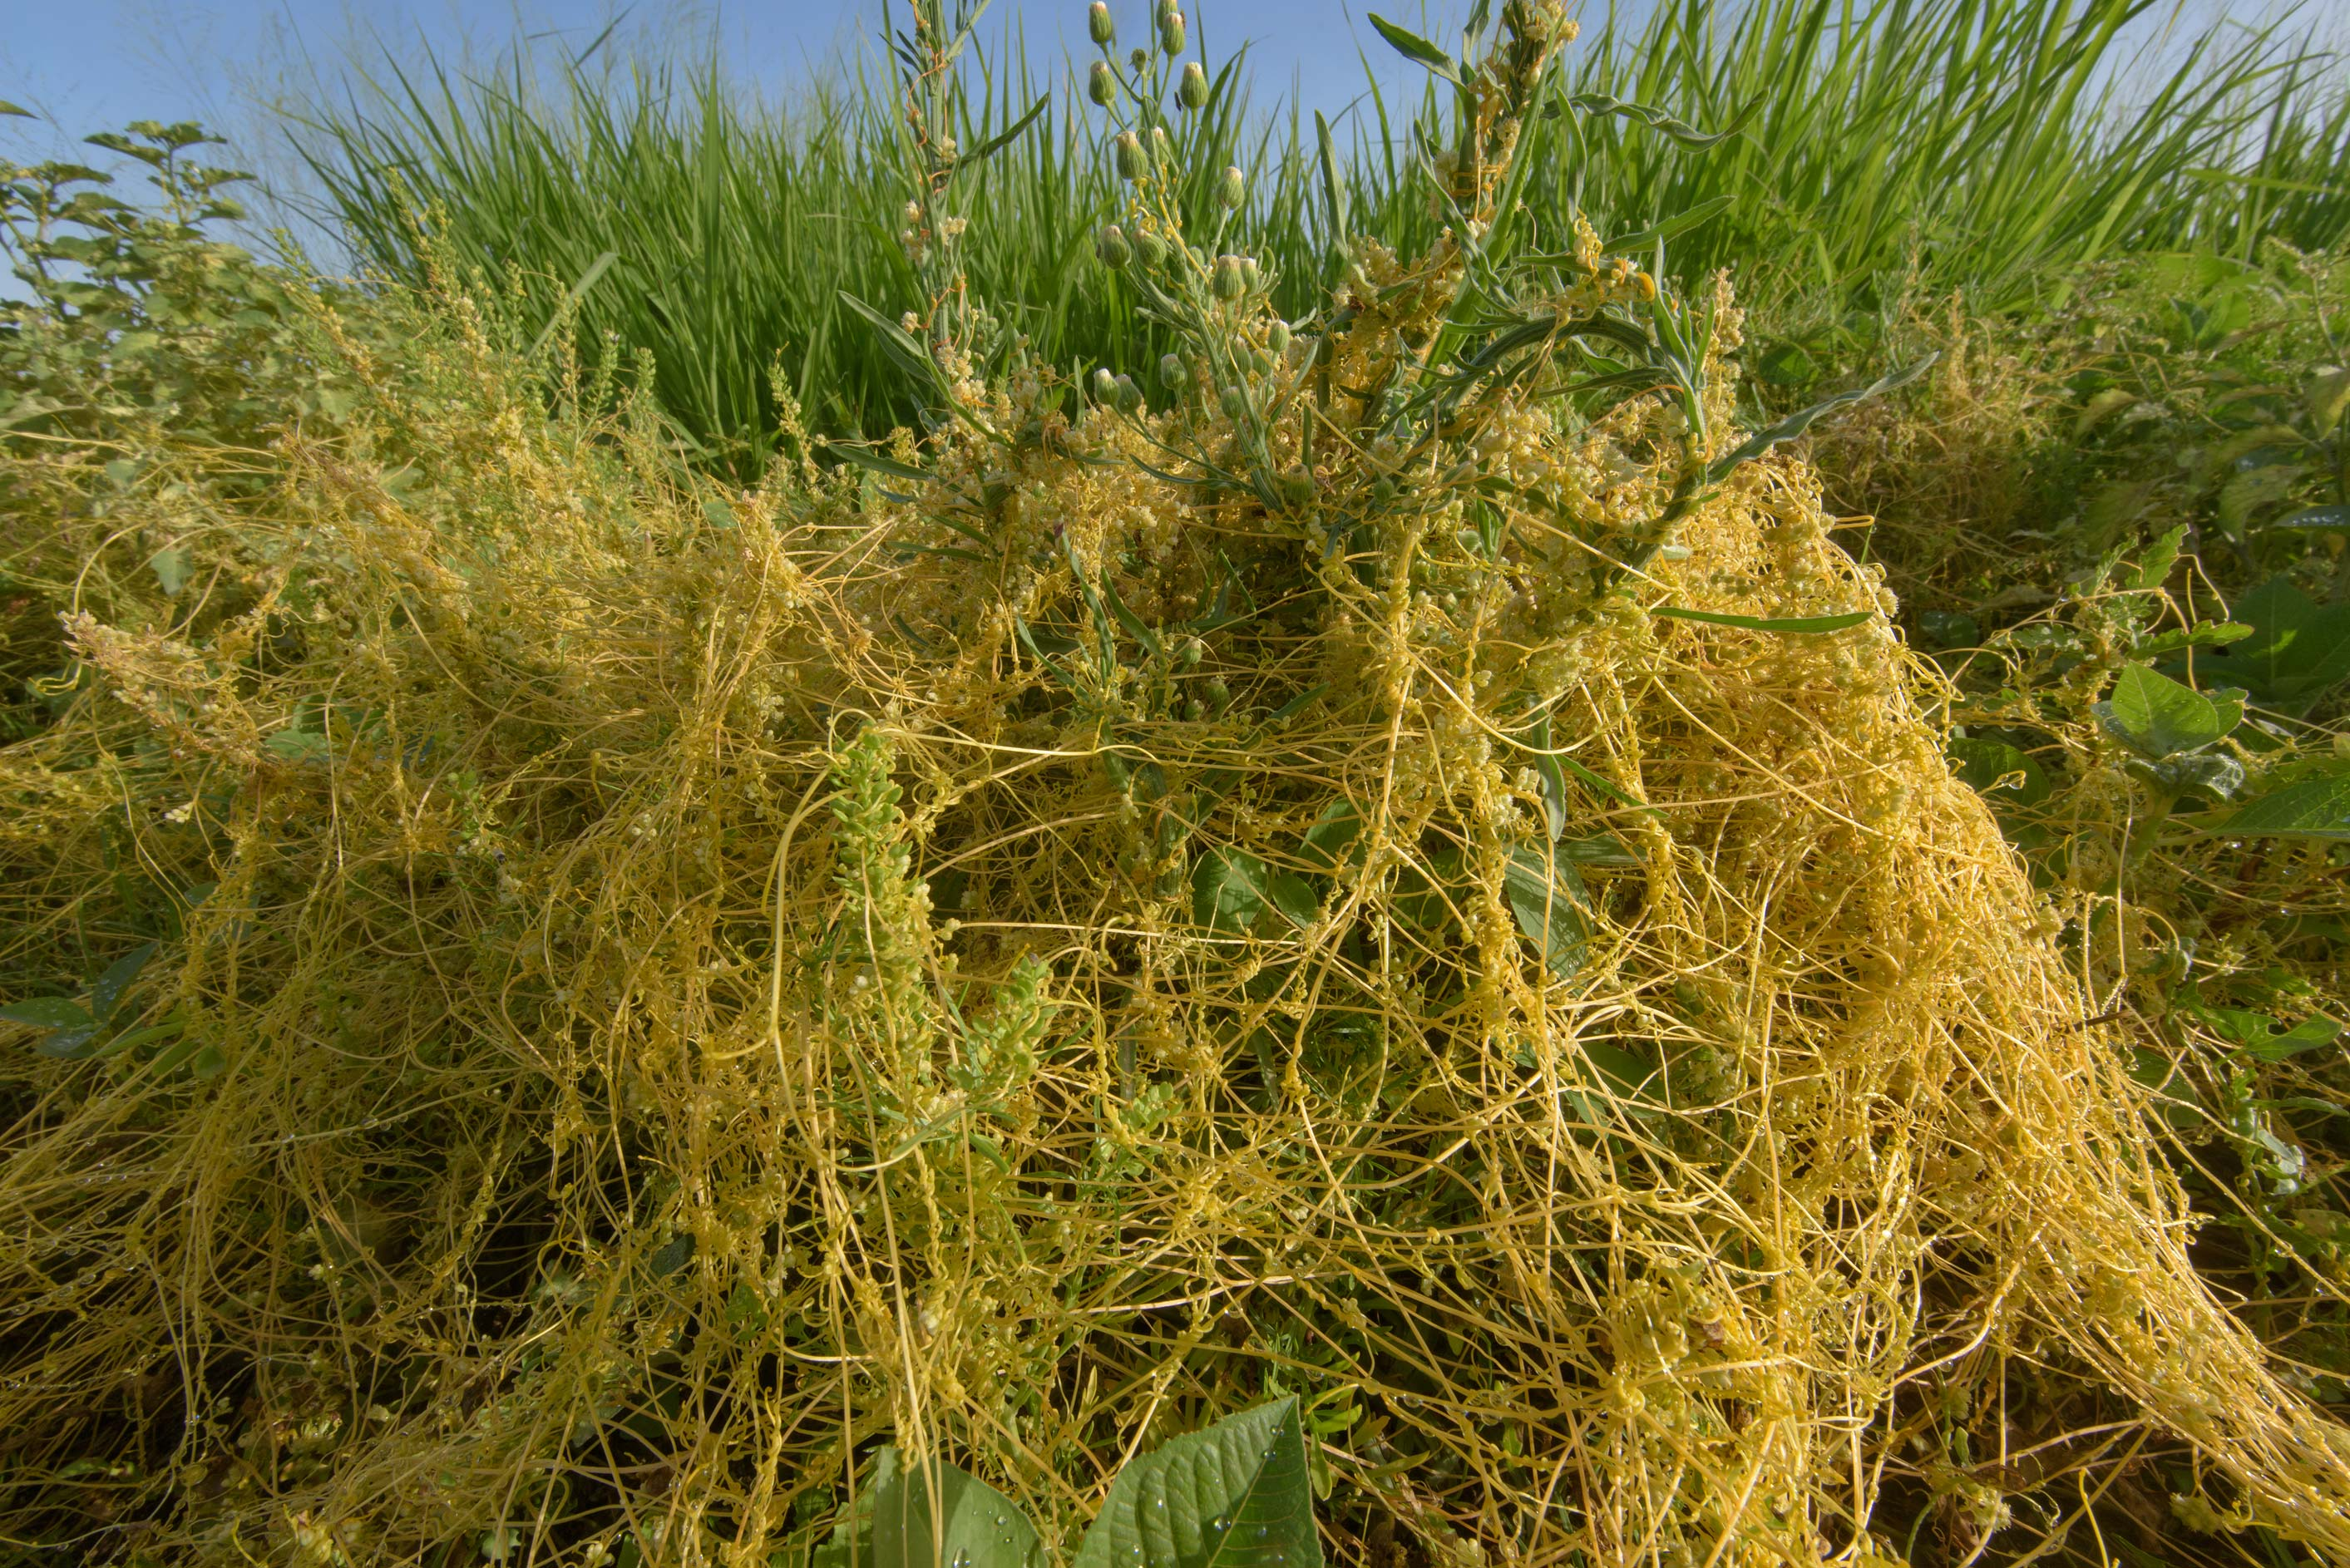 Shoots of golden dodder (Cuscuta campestris) on...in Irkhaya (Irkaya) Farms. Qatar